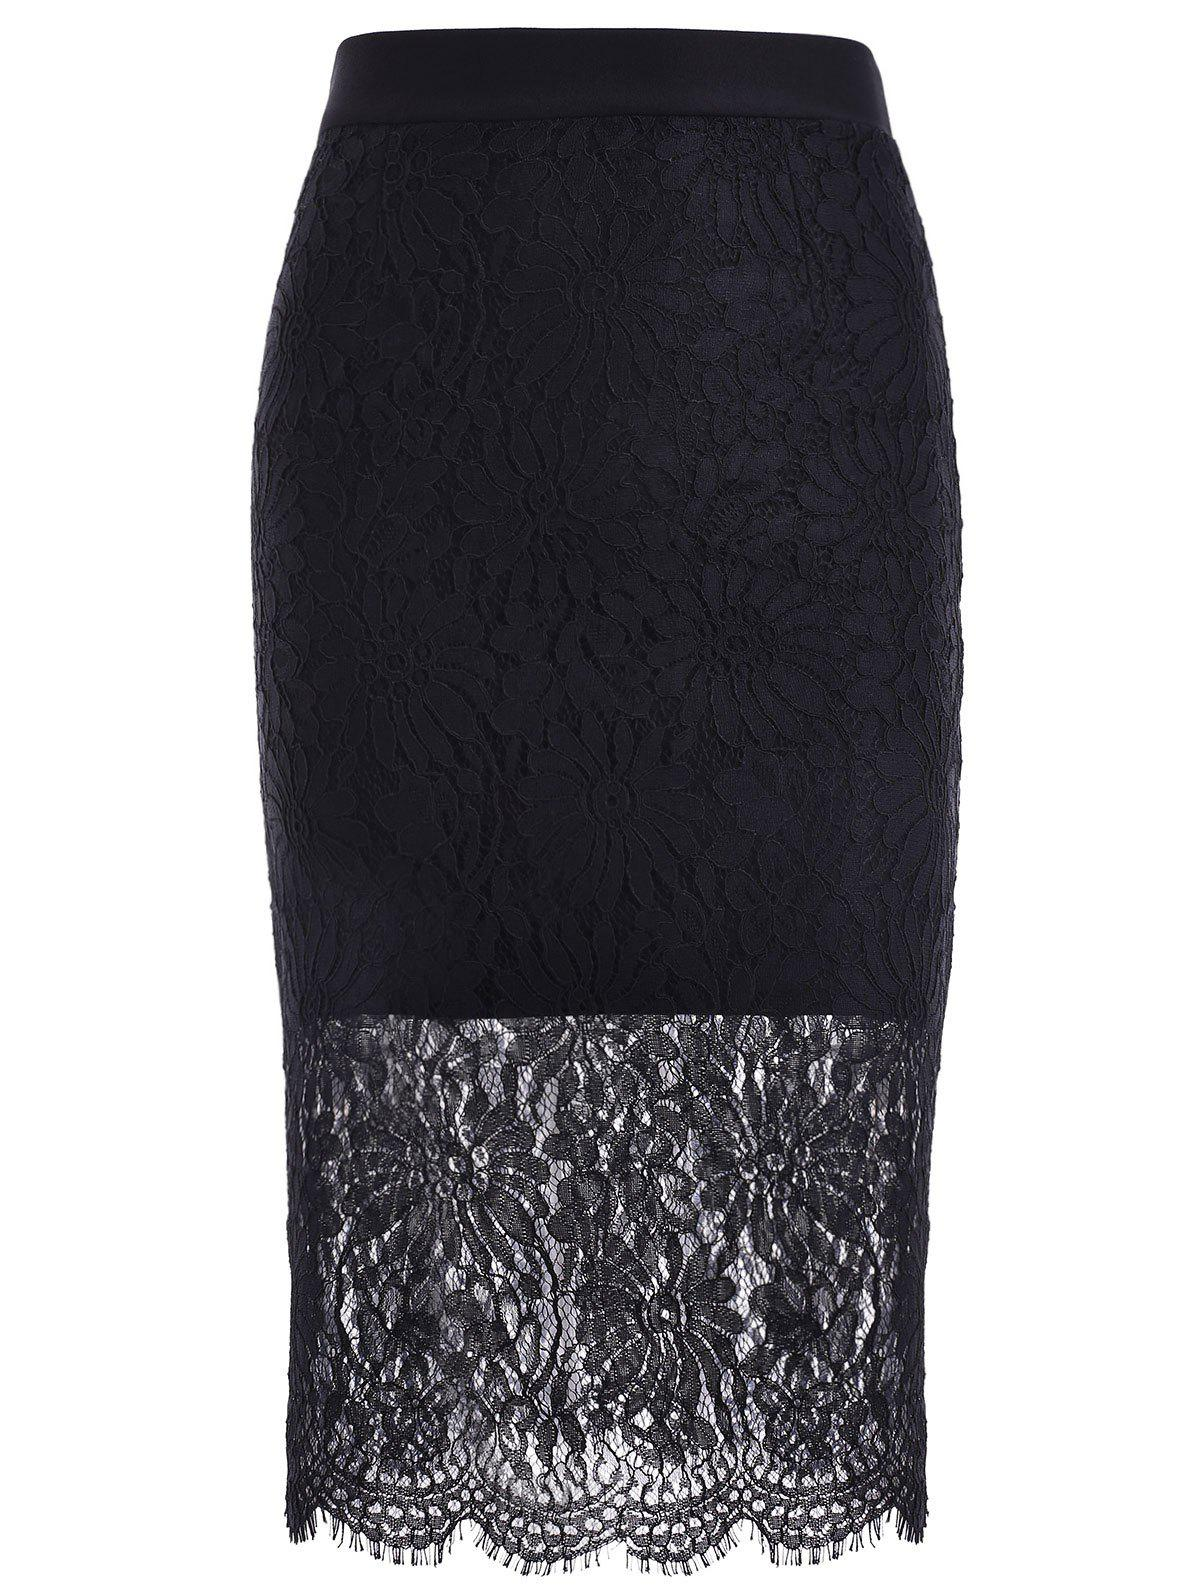 Trendy Lace Splicing Hollow Out Black Skinny Women's Skirt